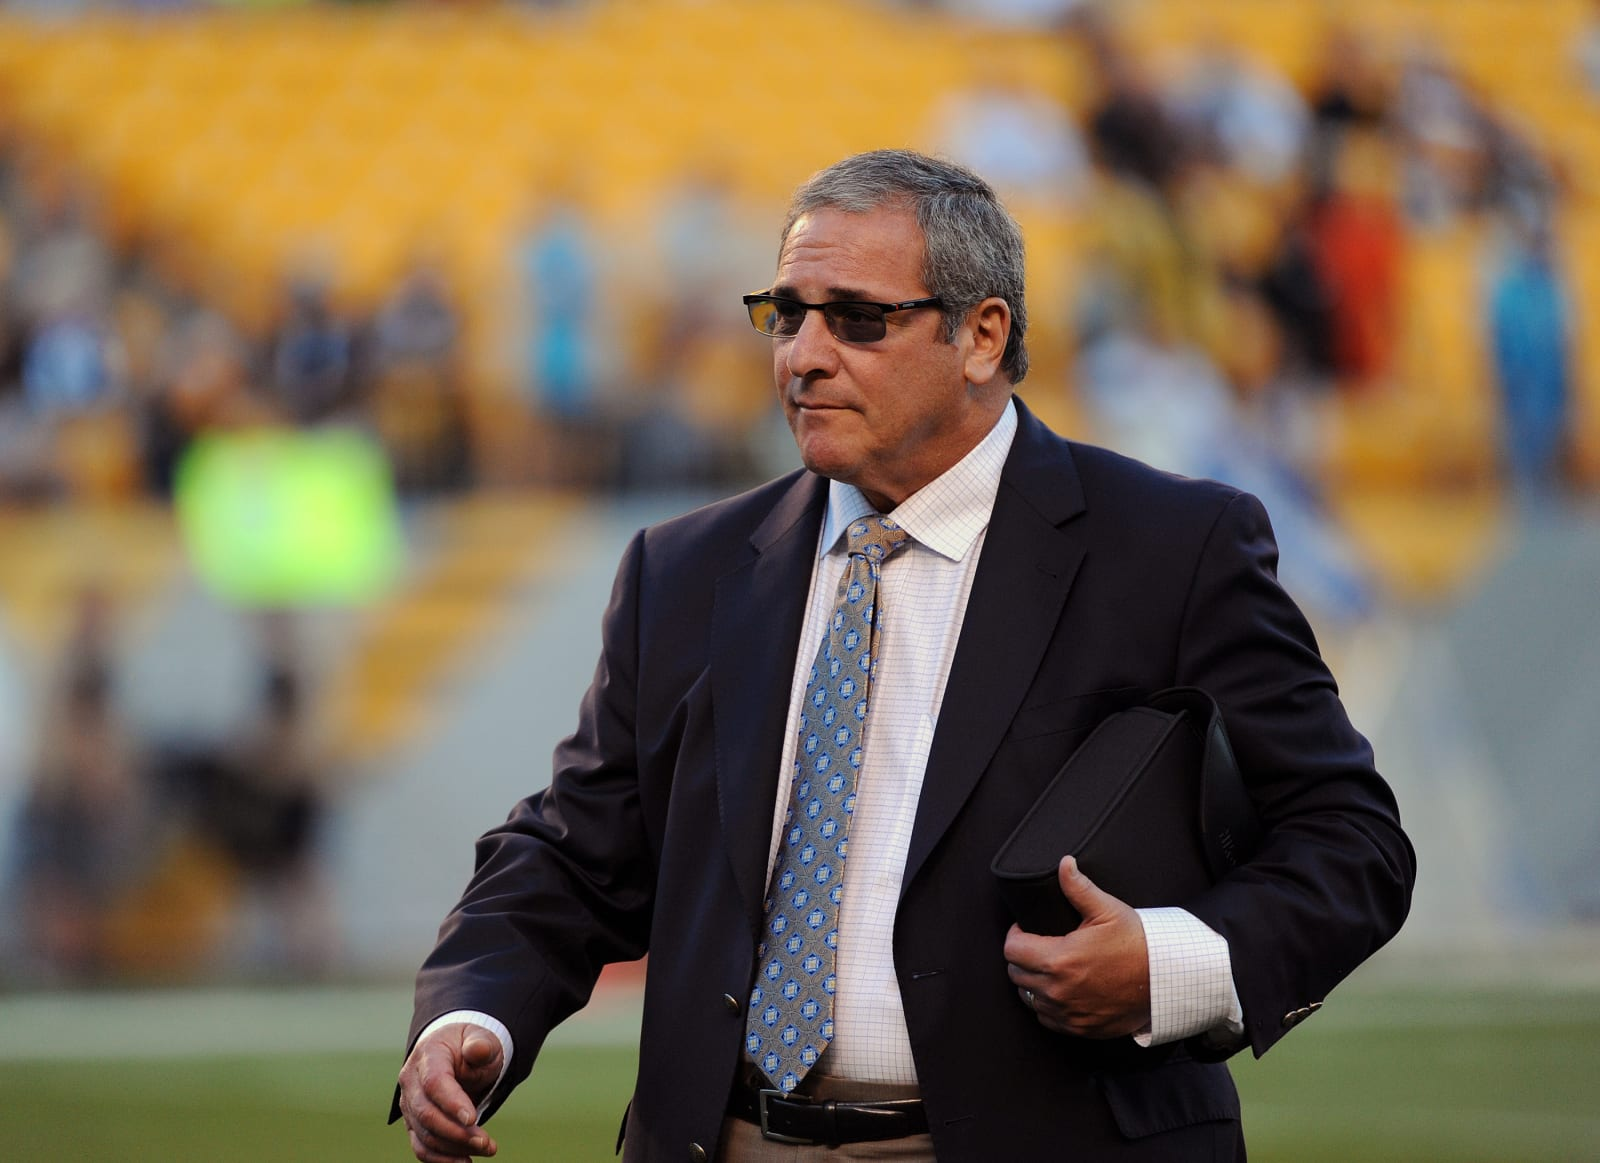 New York Giants general manager Dave Gettleman